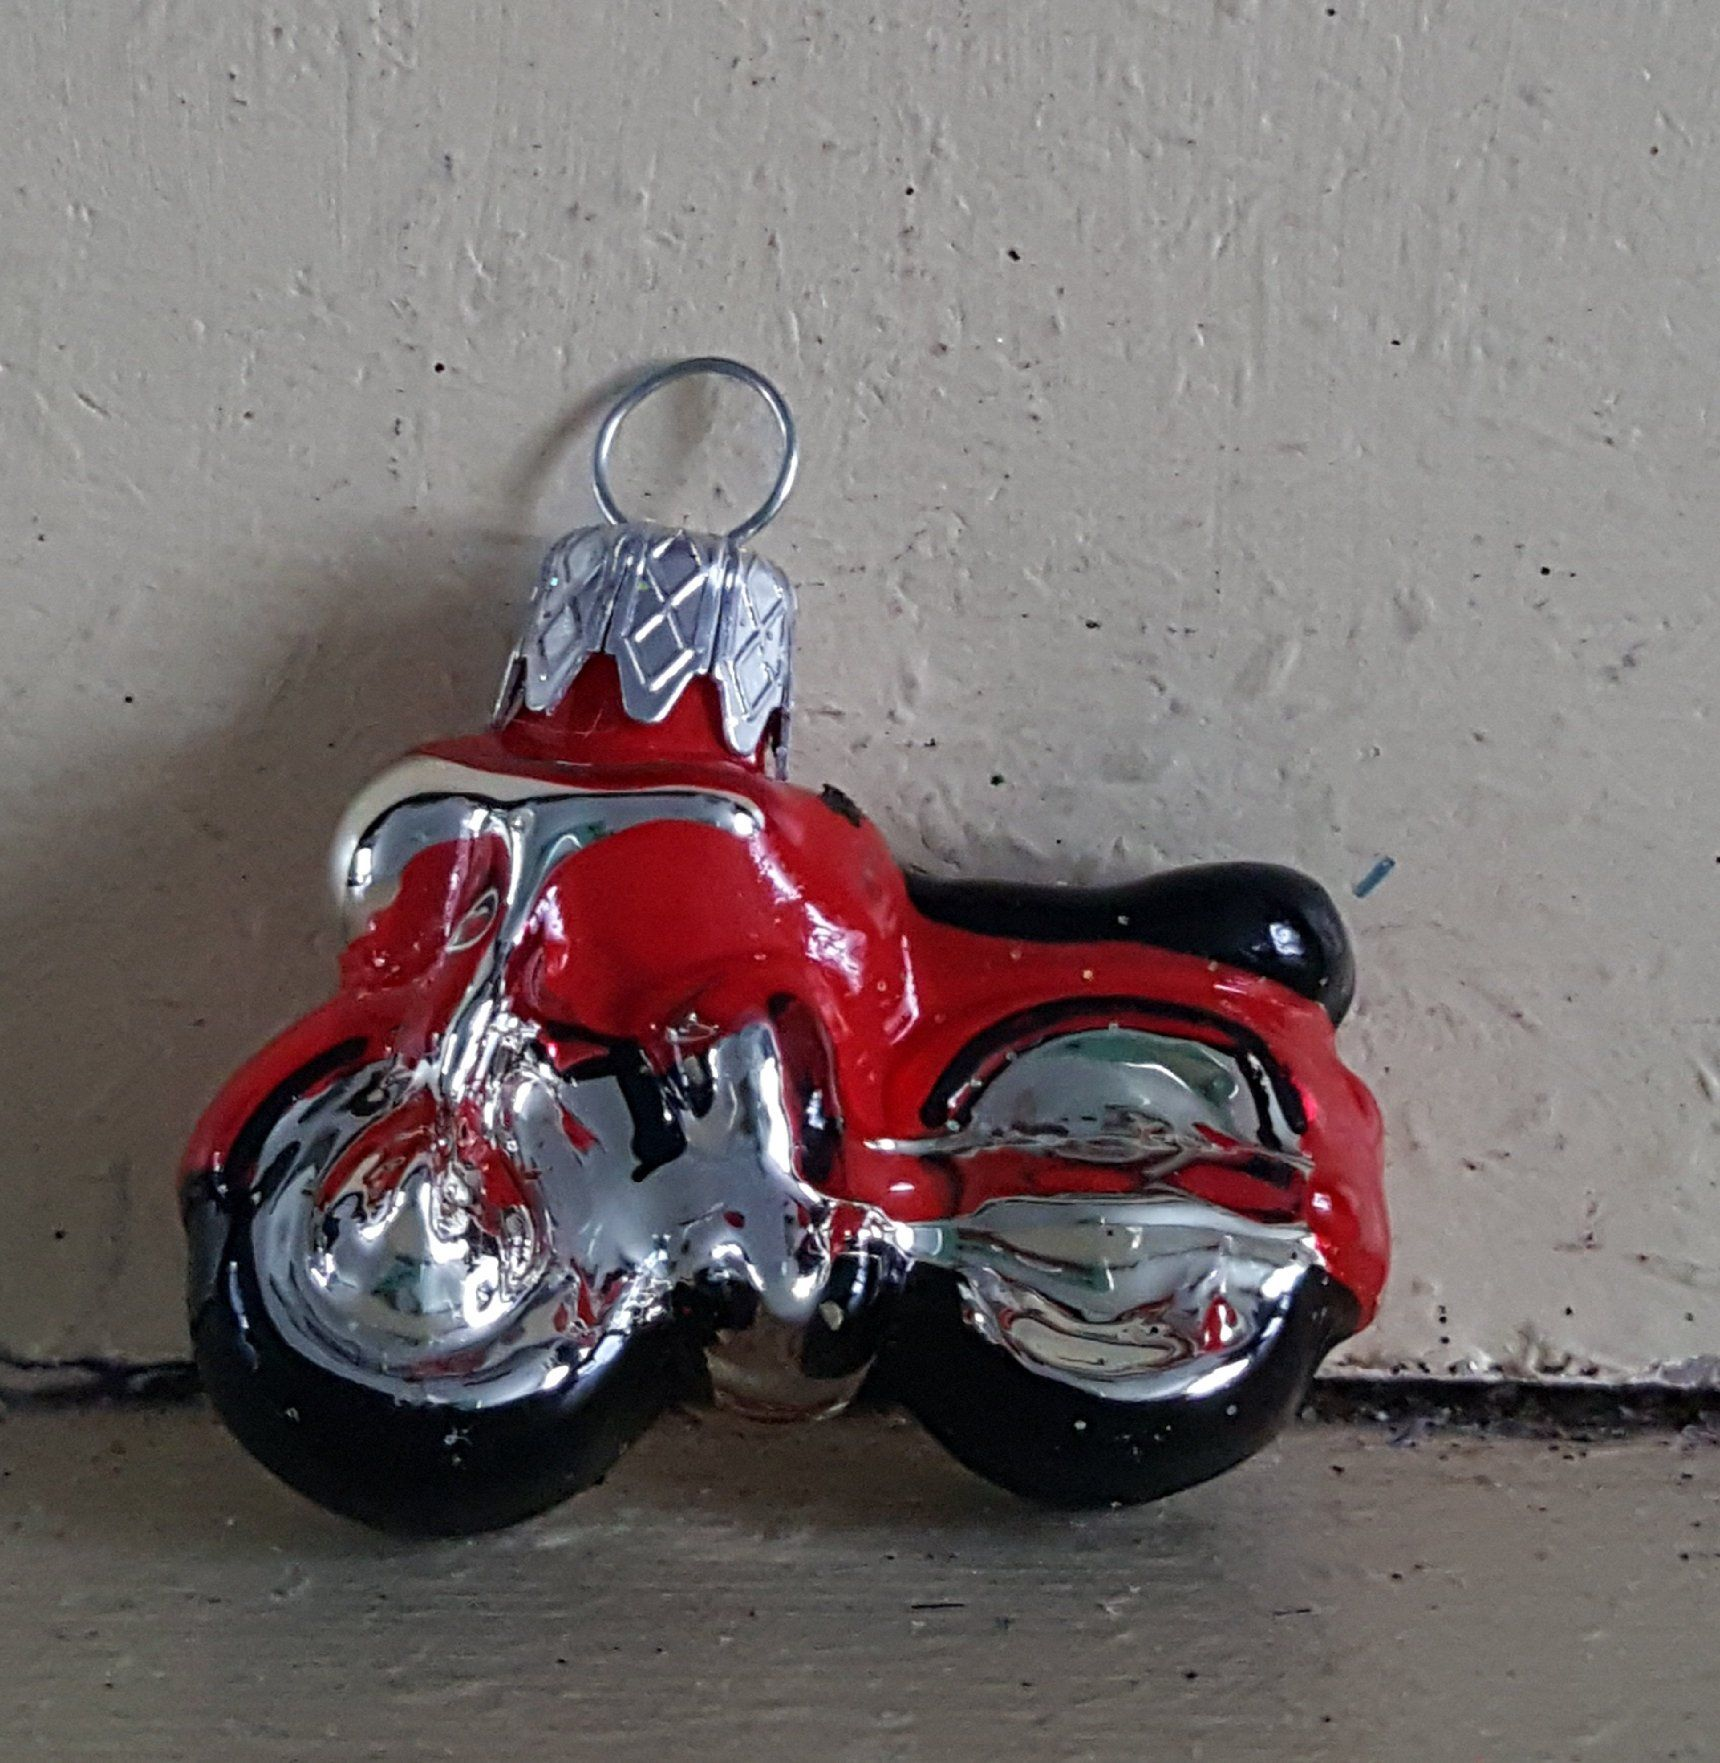 Blown Glass Mini Bright Red Motorbike Christmas Ornament 1 5 Made In Poland By Ukbeadsonline On Etsy Mini Ornaments Christmas Ornaments Glass Blowing